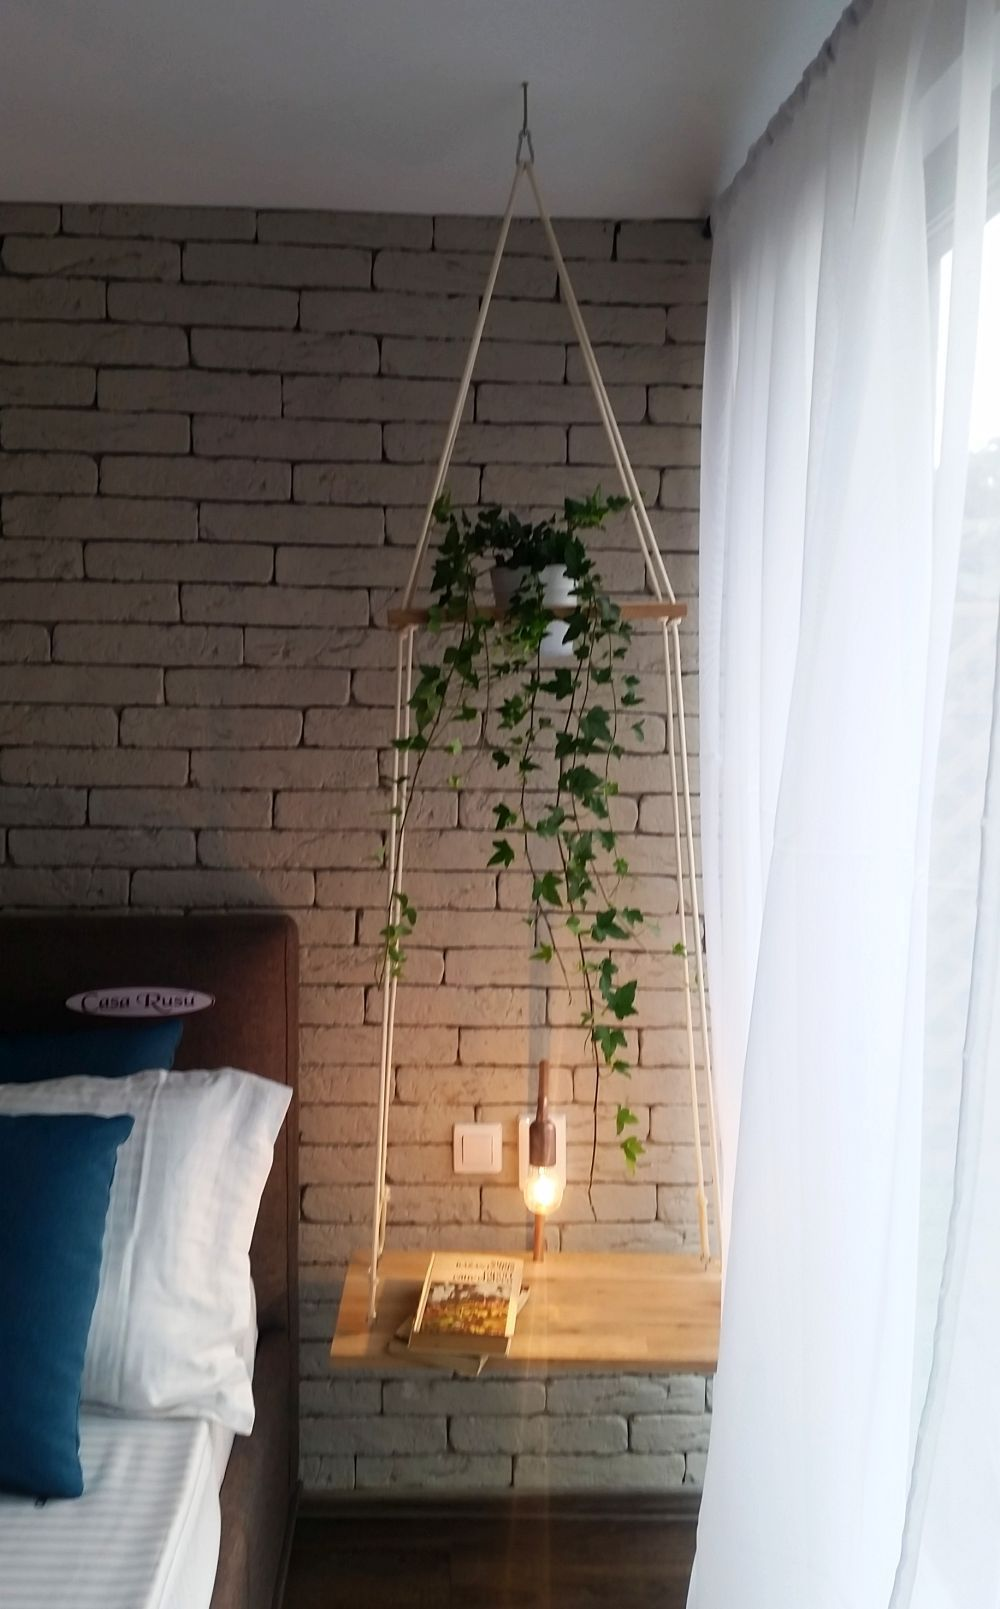 23 Awesome Diy Hanging Shelves To Improve Your Home Diy Hanging Shelves Hanging Shelves Decor